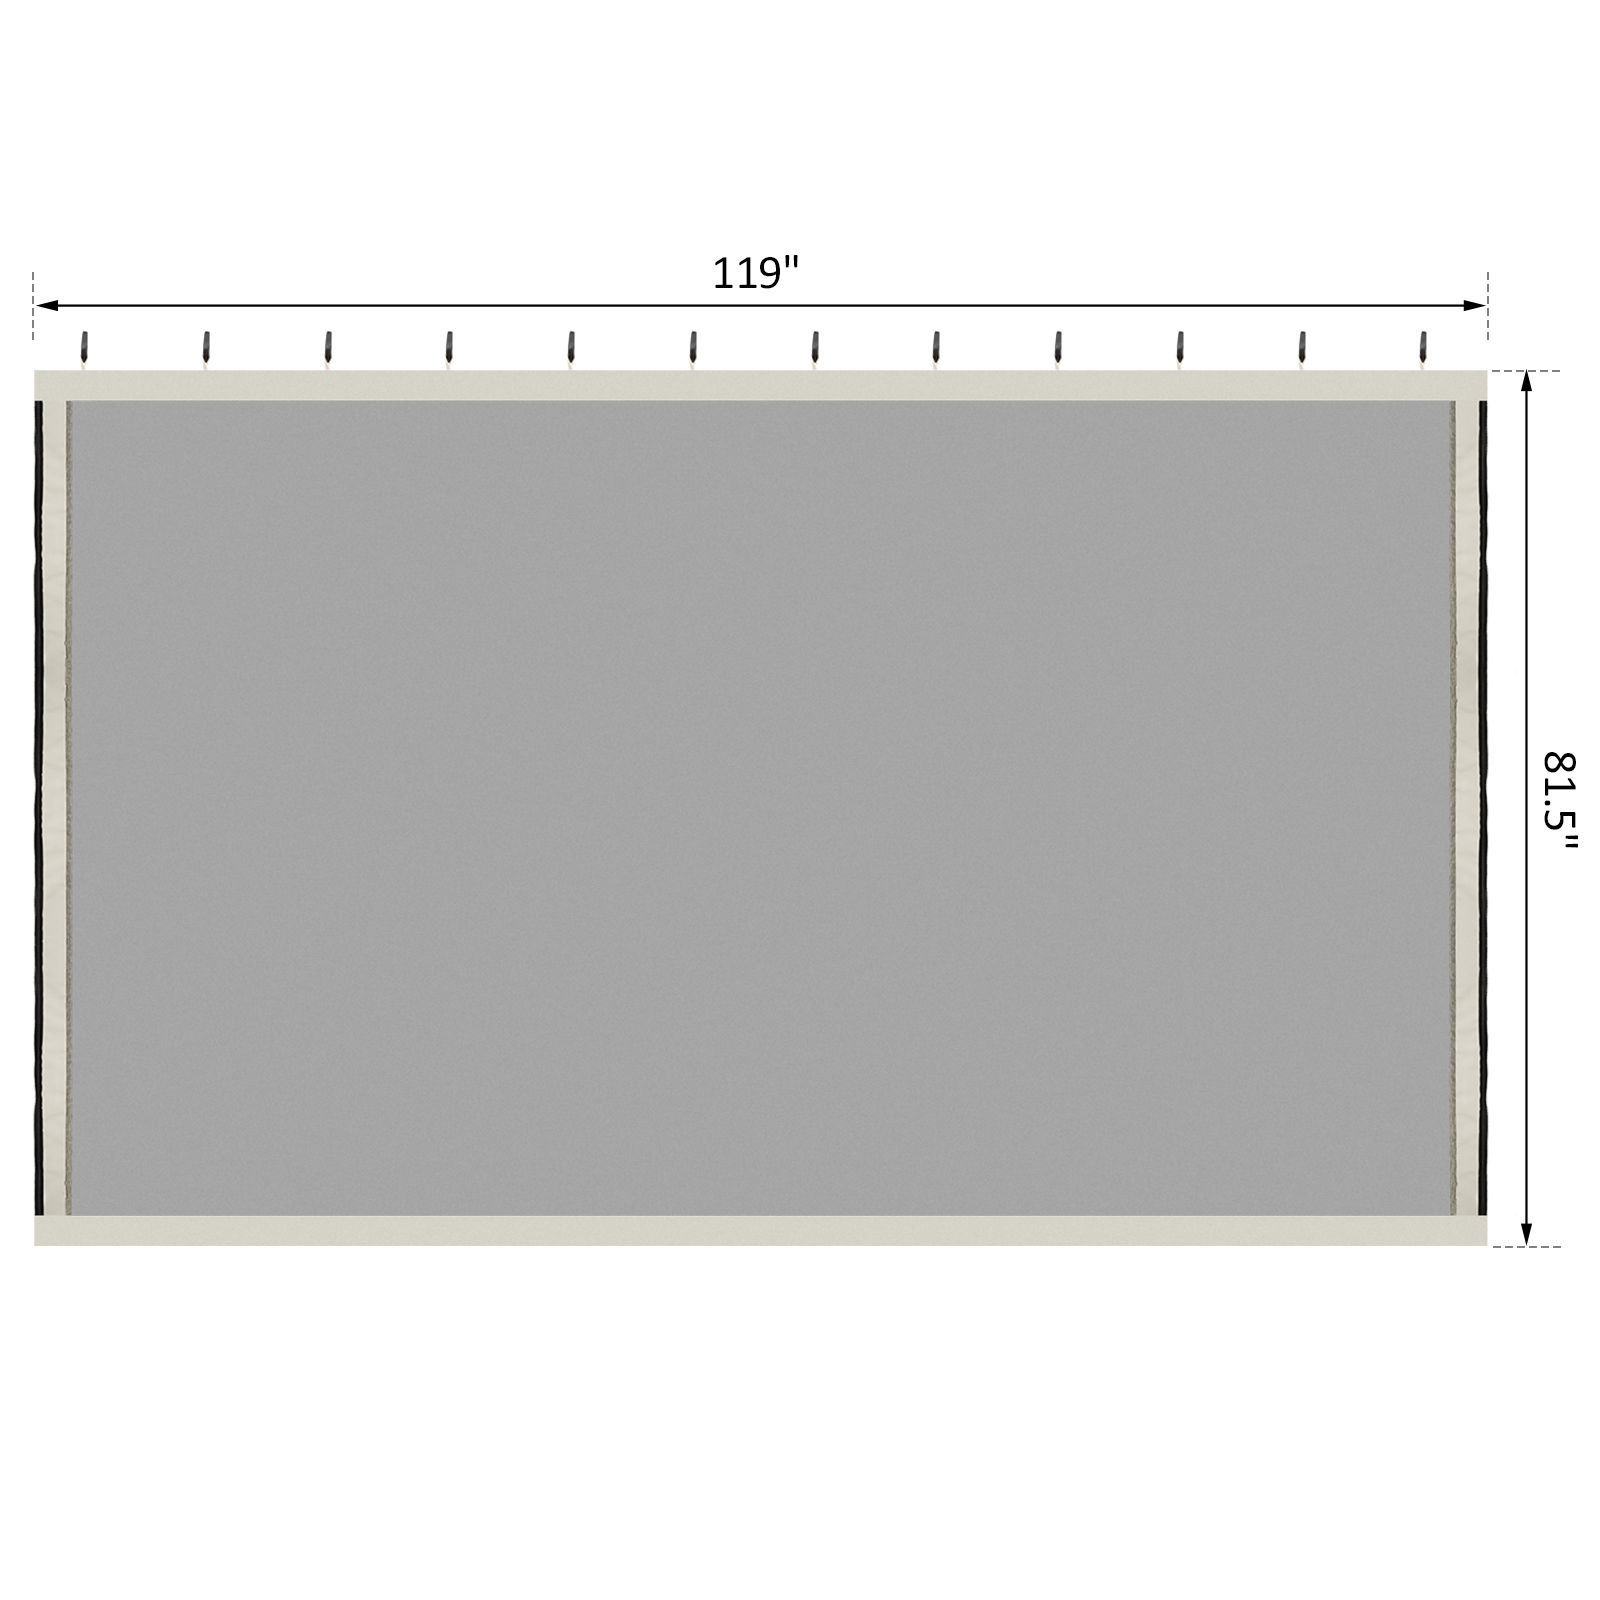 Picture of Outdoor Replacement Mesh Mosquito Netting for 10' x 10' Tent